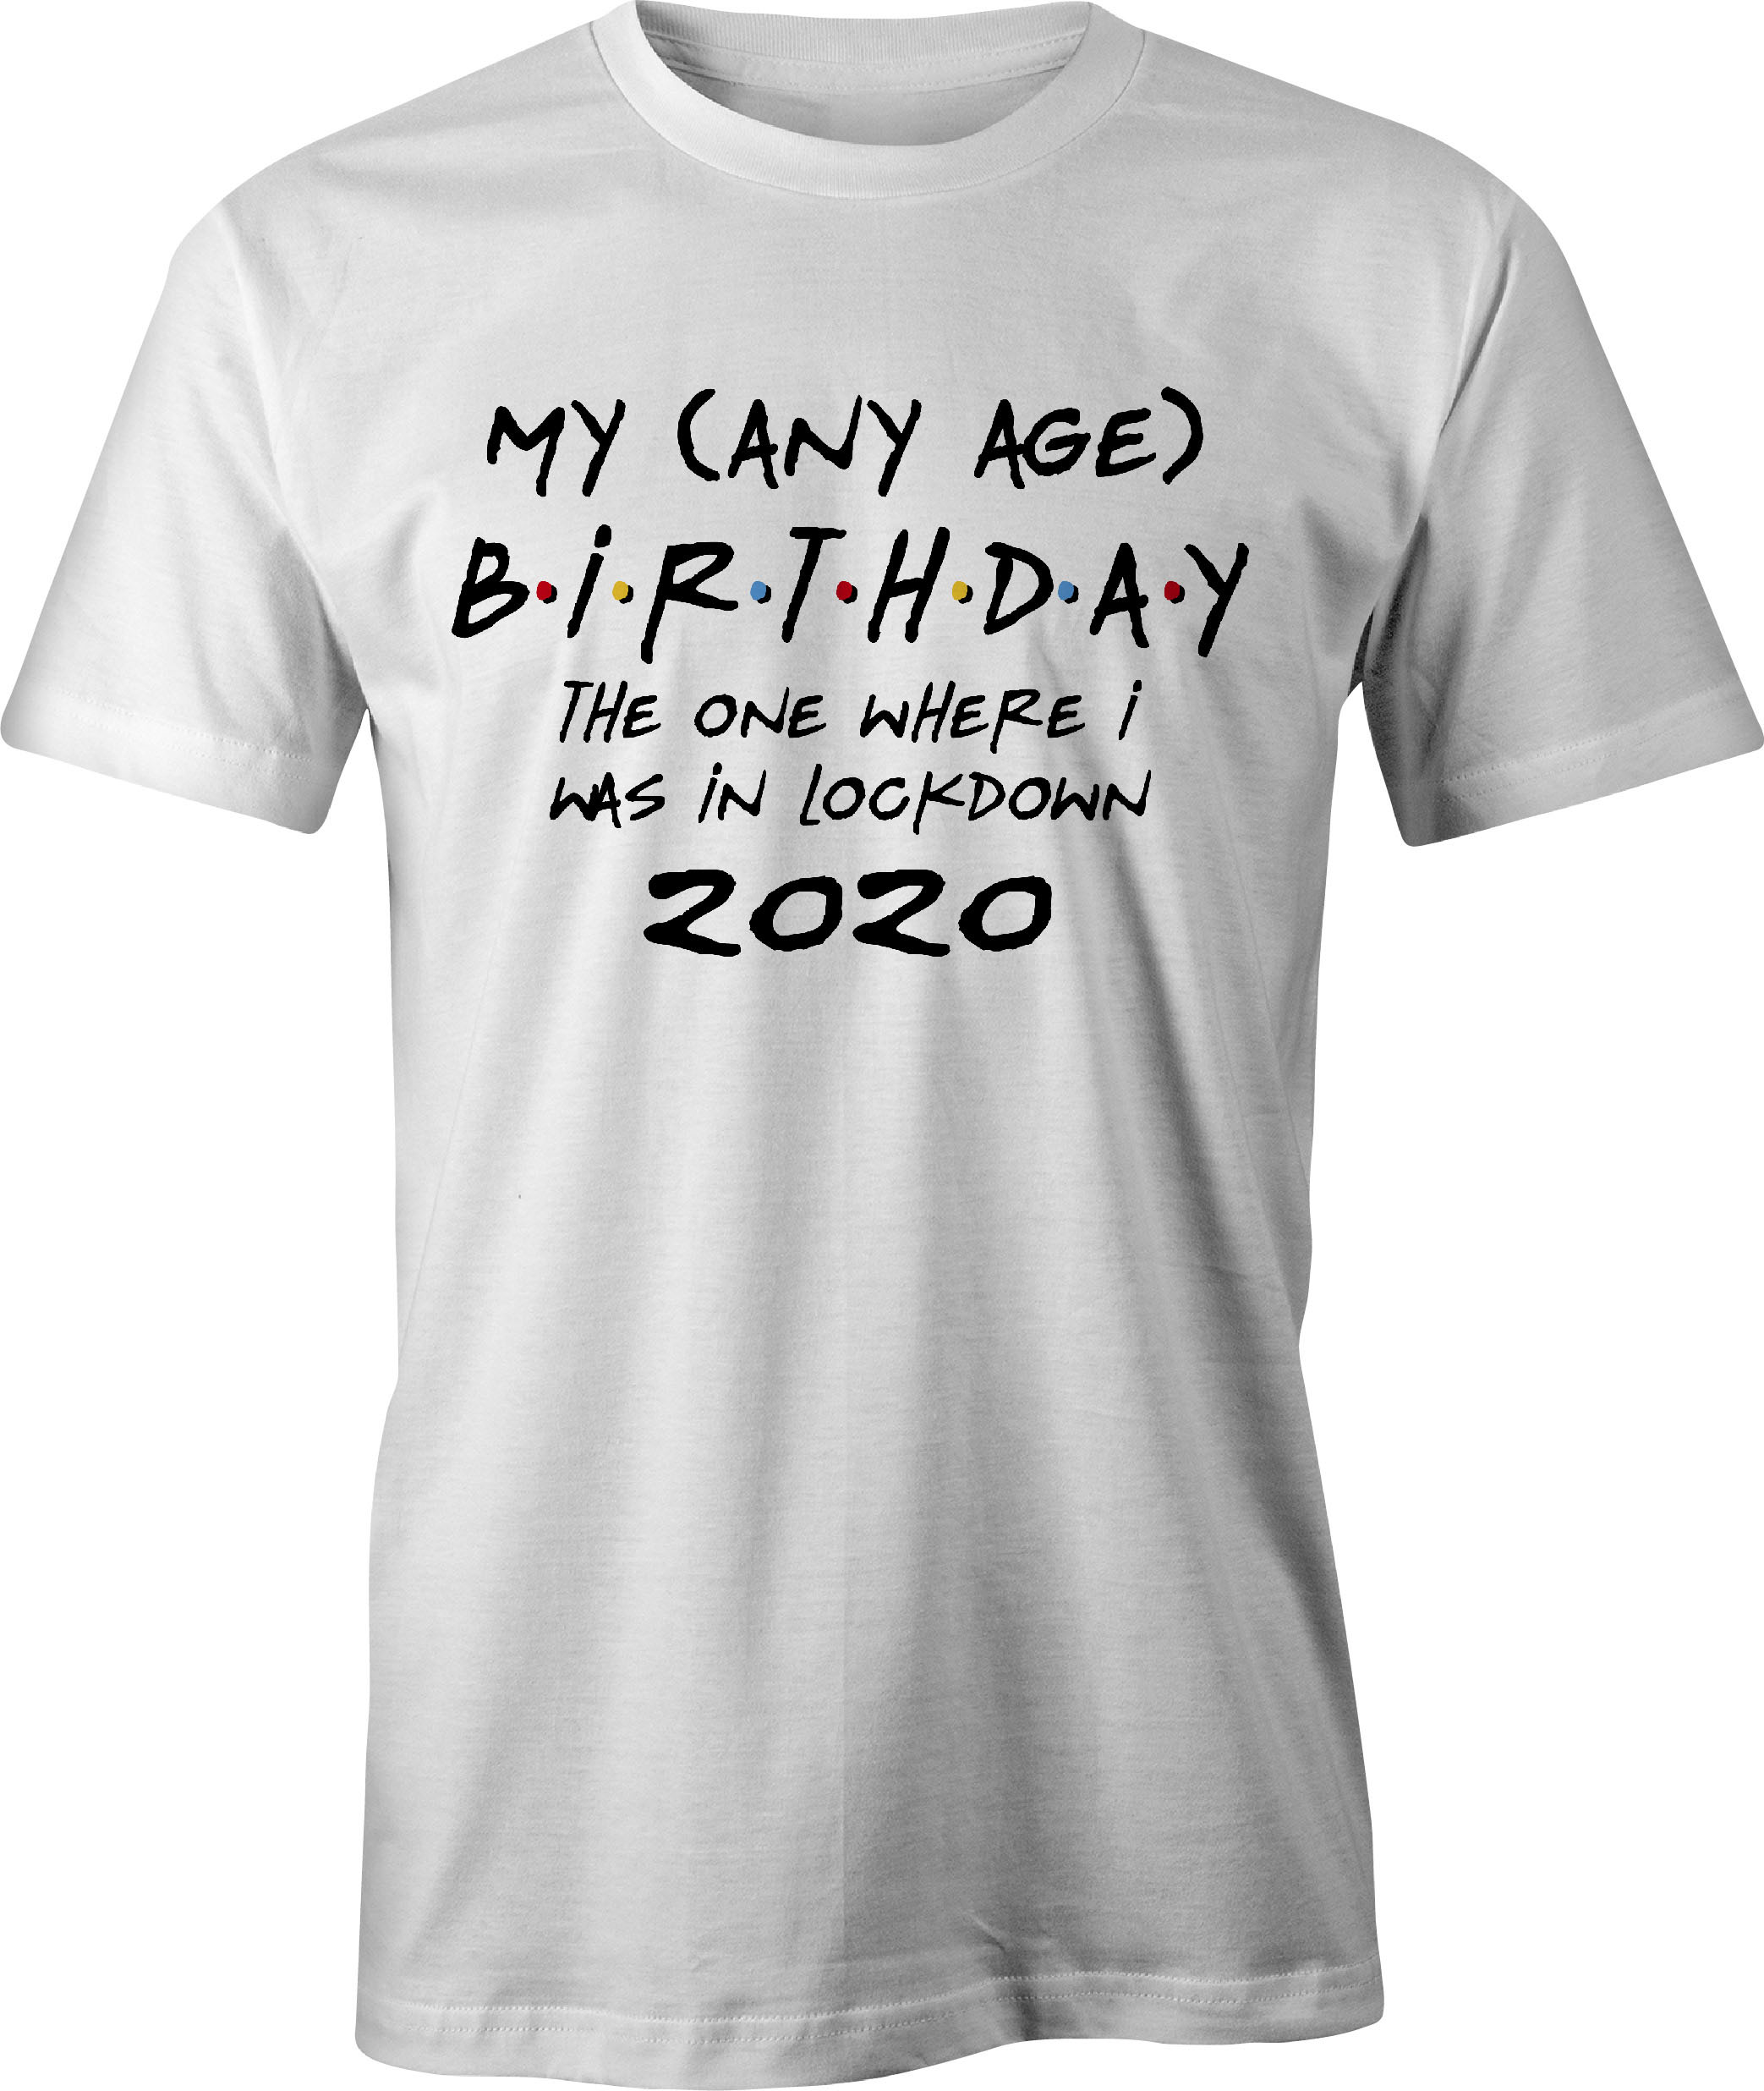 Any age birthday lockdown t-shirt - white